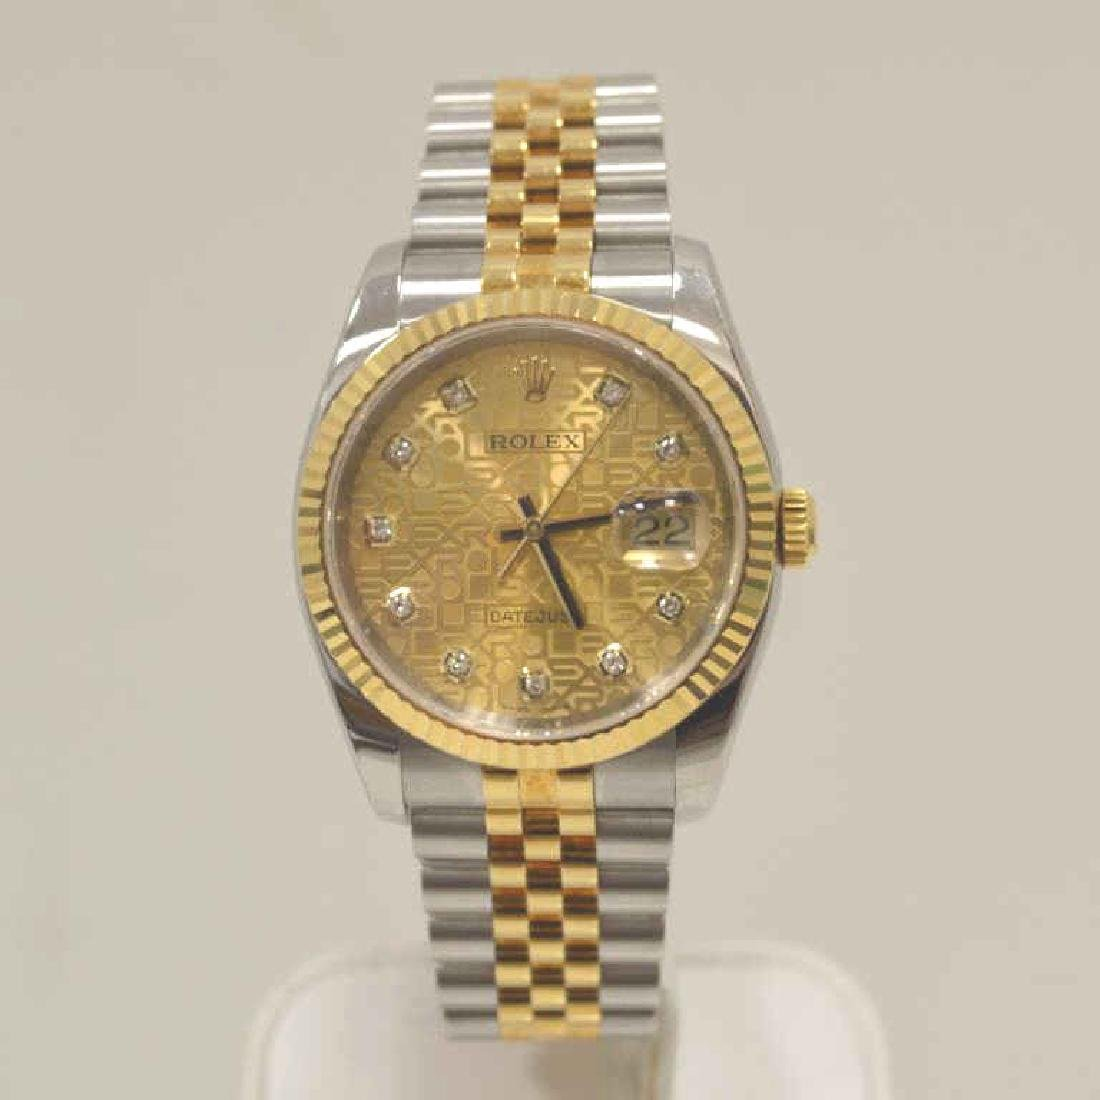 Men's Two Tone Rolex Datejust Watch